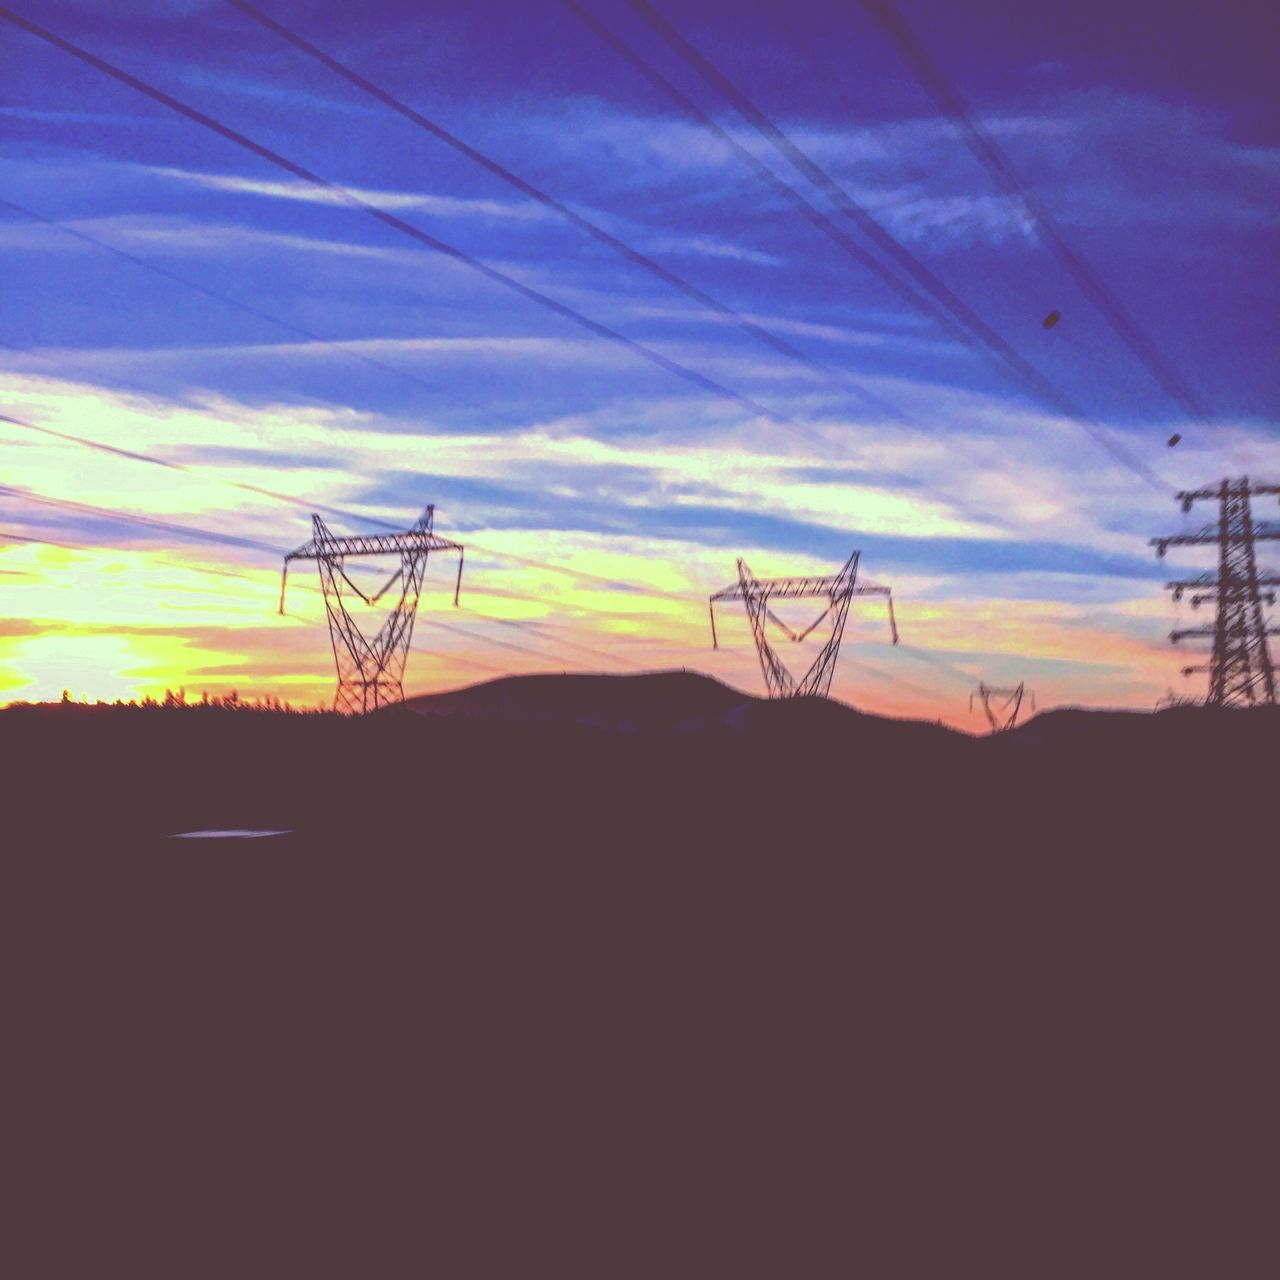 silhouette, sky, sunset, nature, cable, no people, tranquility, technology, scenics, outdoors, electricity, cloud - sky, electricity pylon, landscape, beauty in nature, day, tree